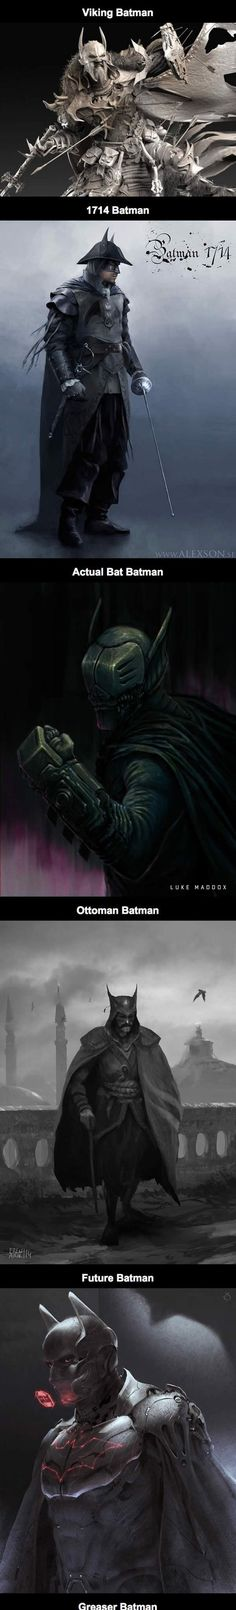 Awesome Alternate Fan Art Takes On Batman